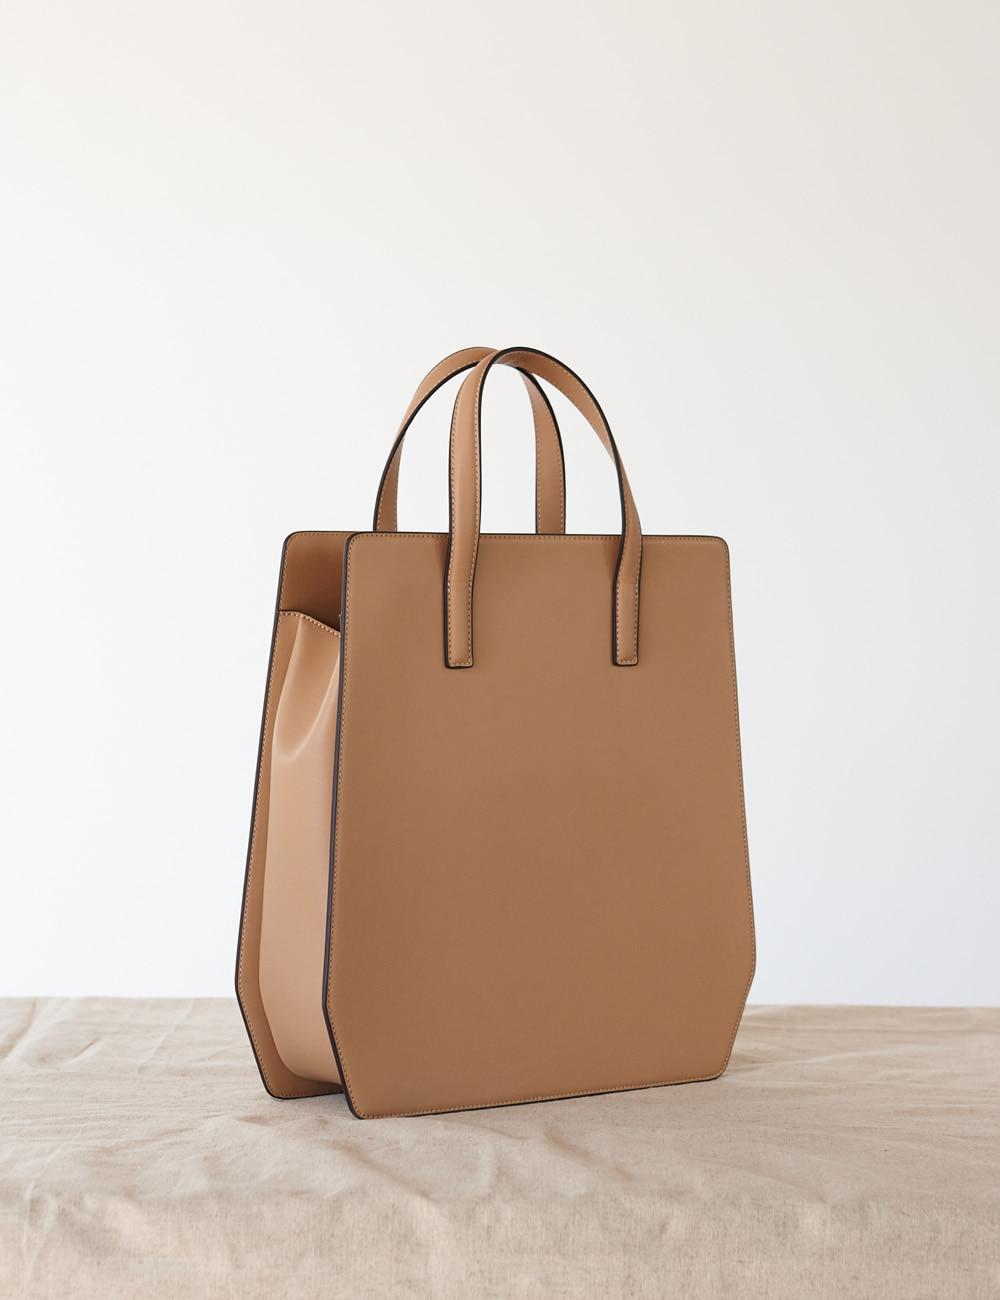 MAISON246,246 ABBA BAG - BEIGE,No.246